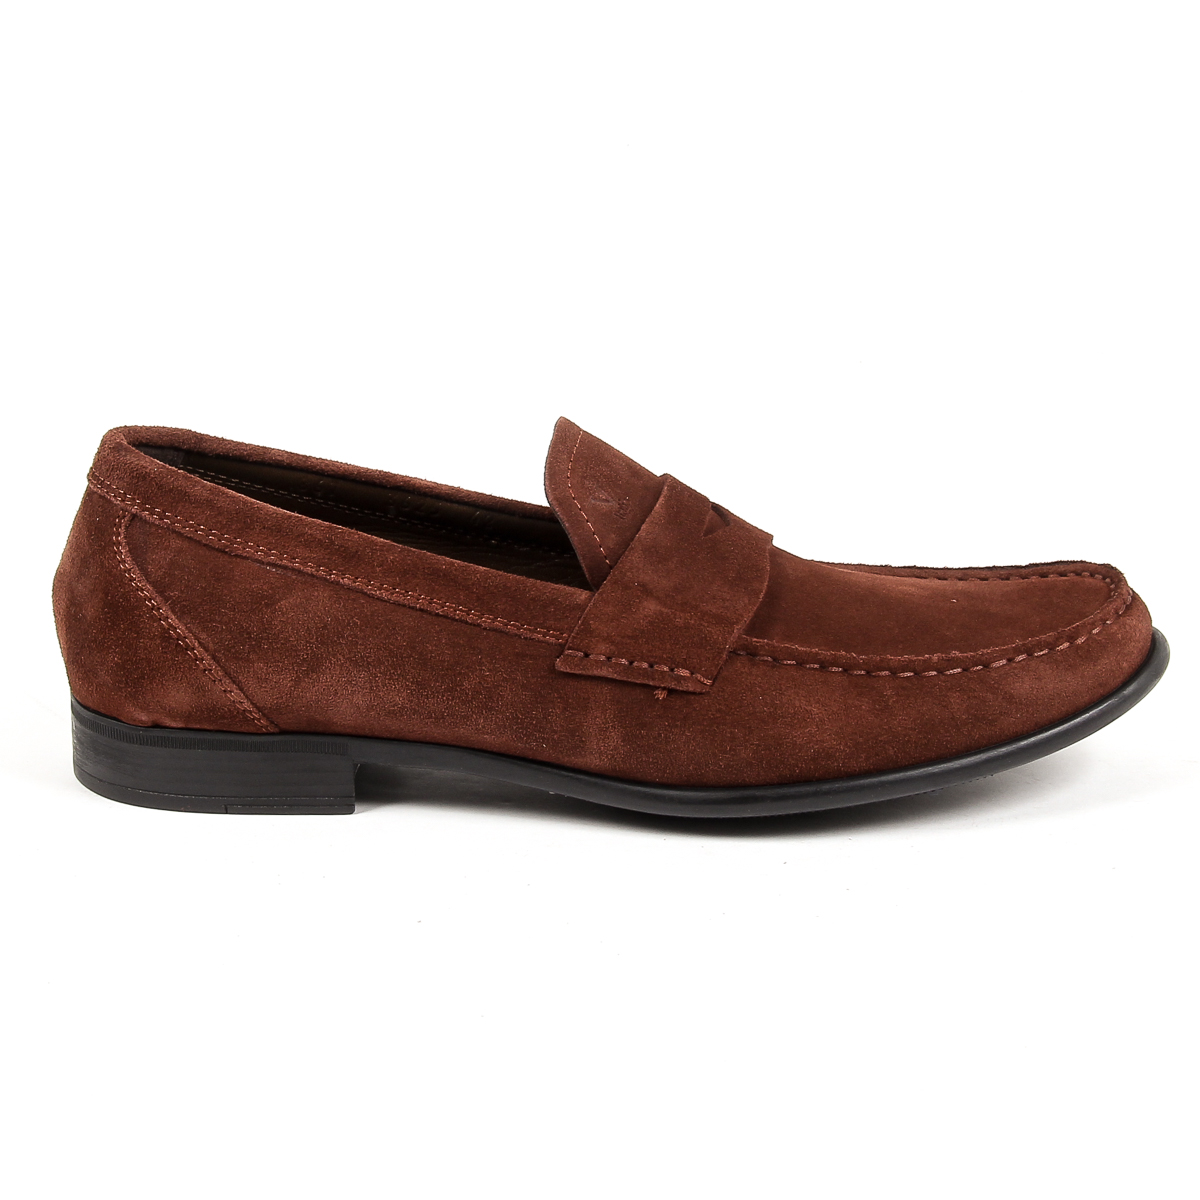 Primary image for V 1969 Italia Mens Loafer Brown LEONARDO